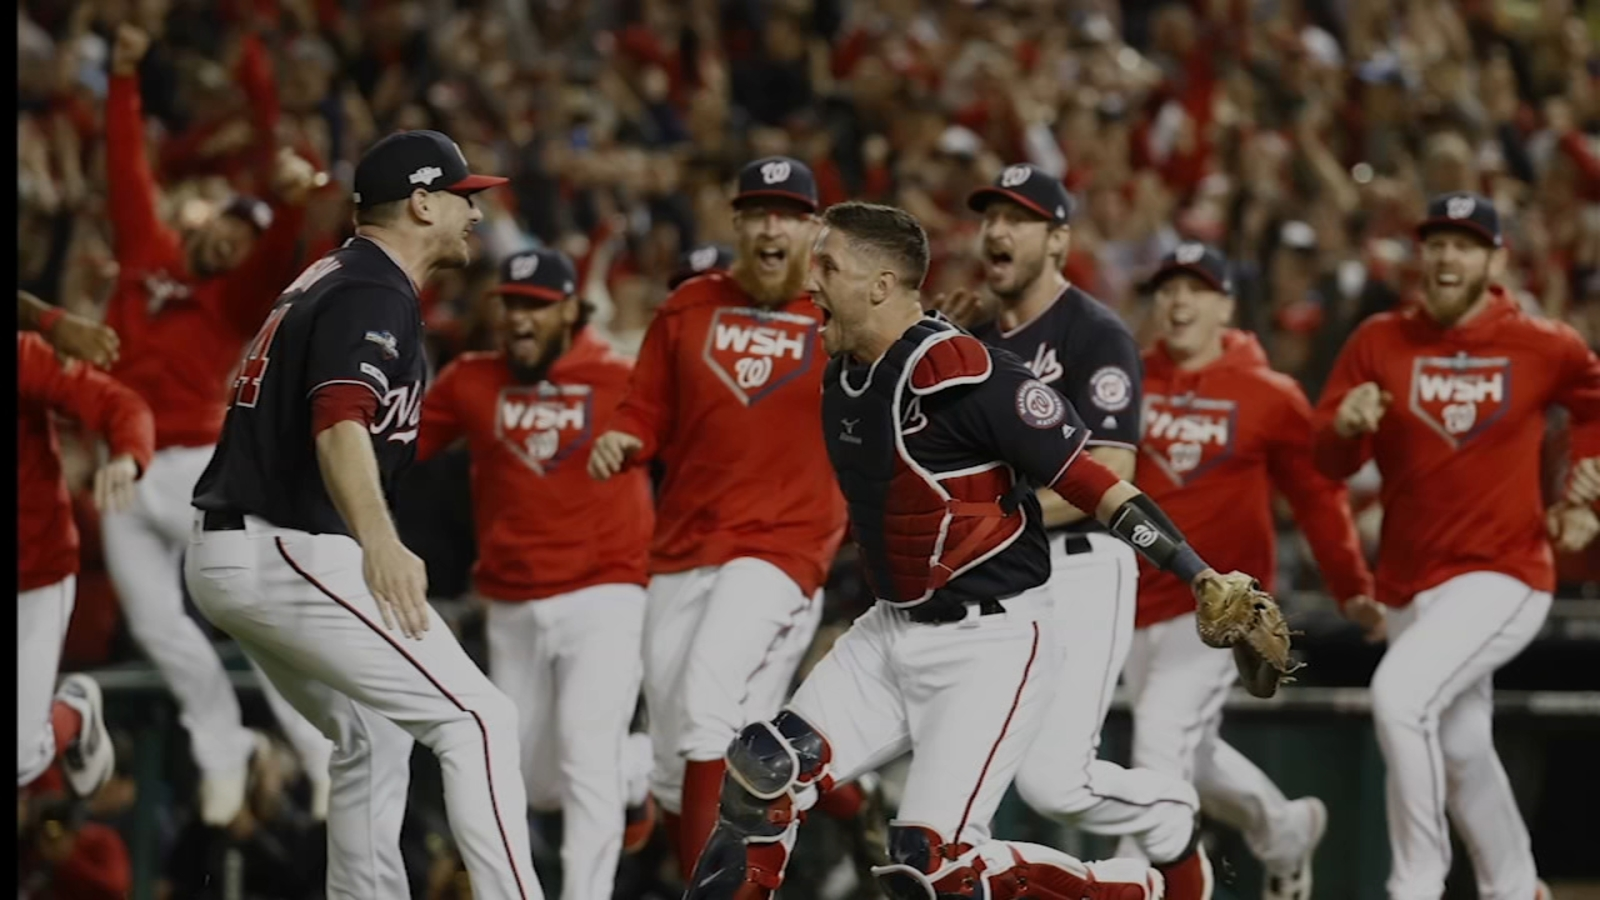 Download Washington Nationals Wallpaper World Series Pictures